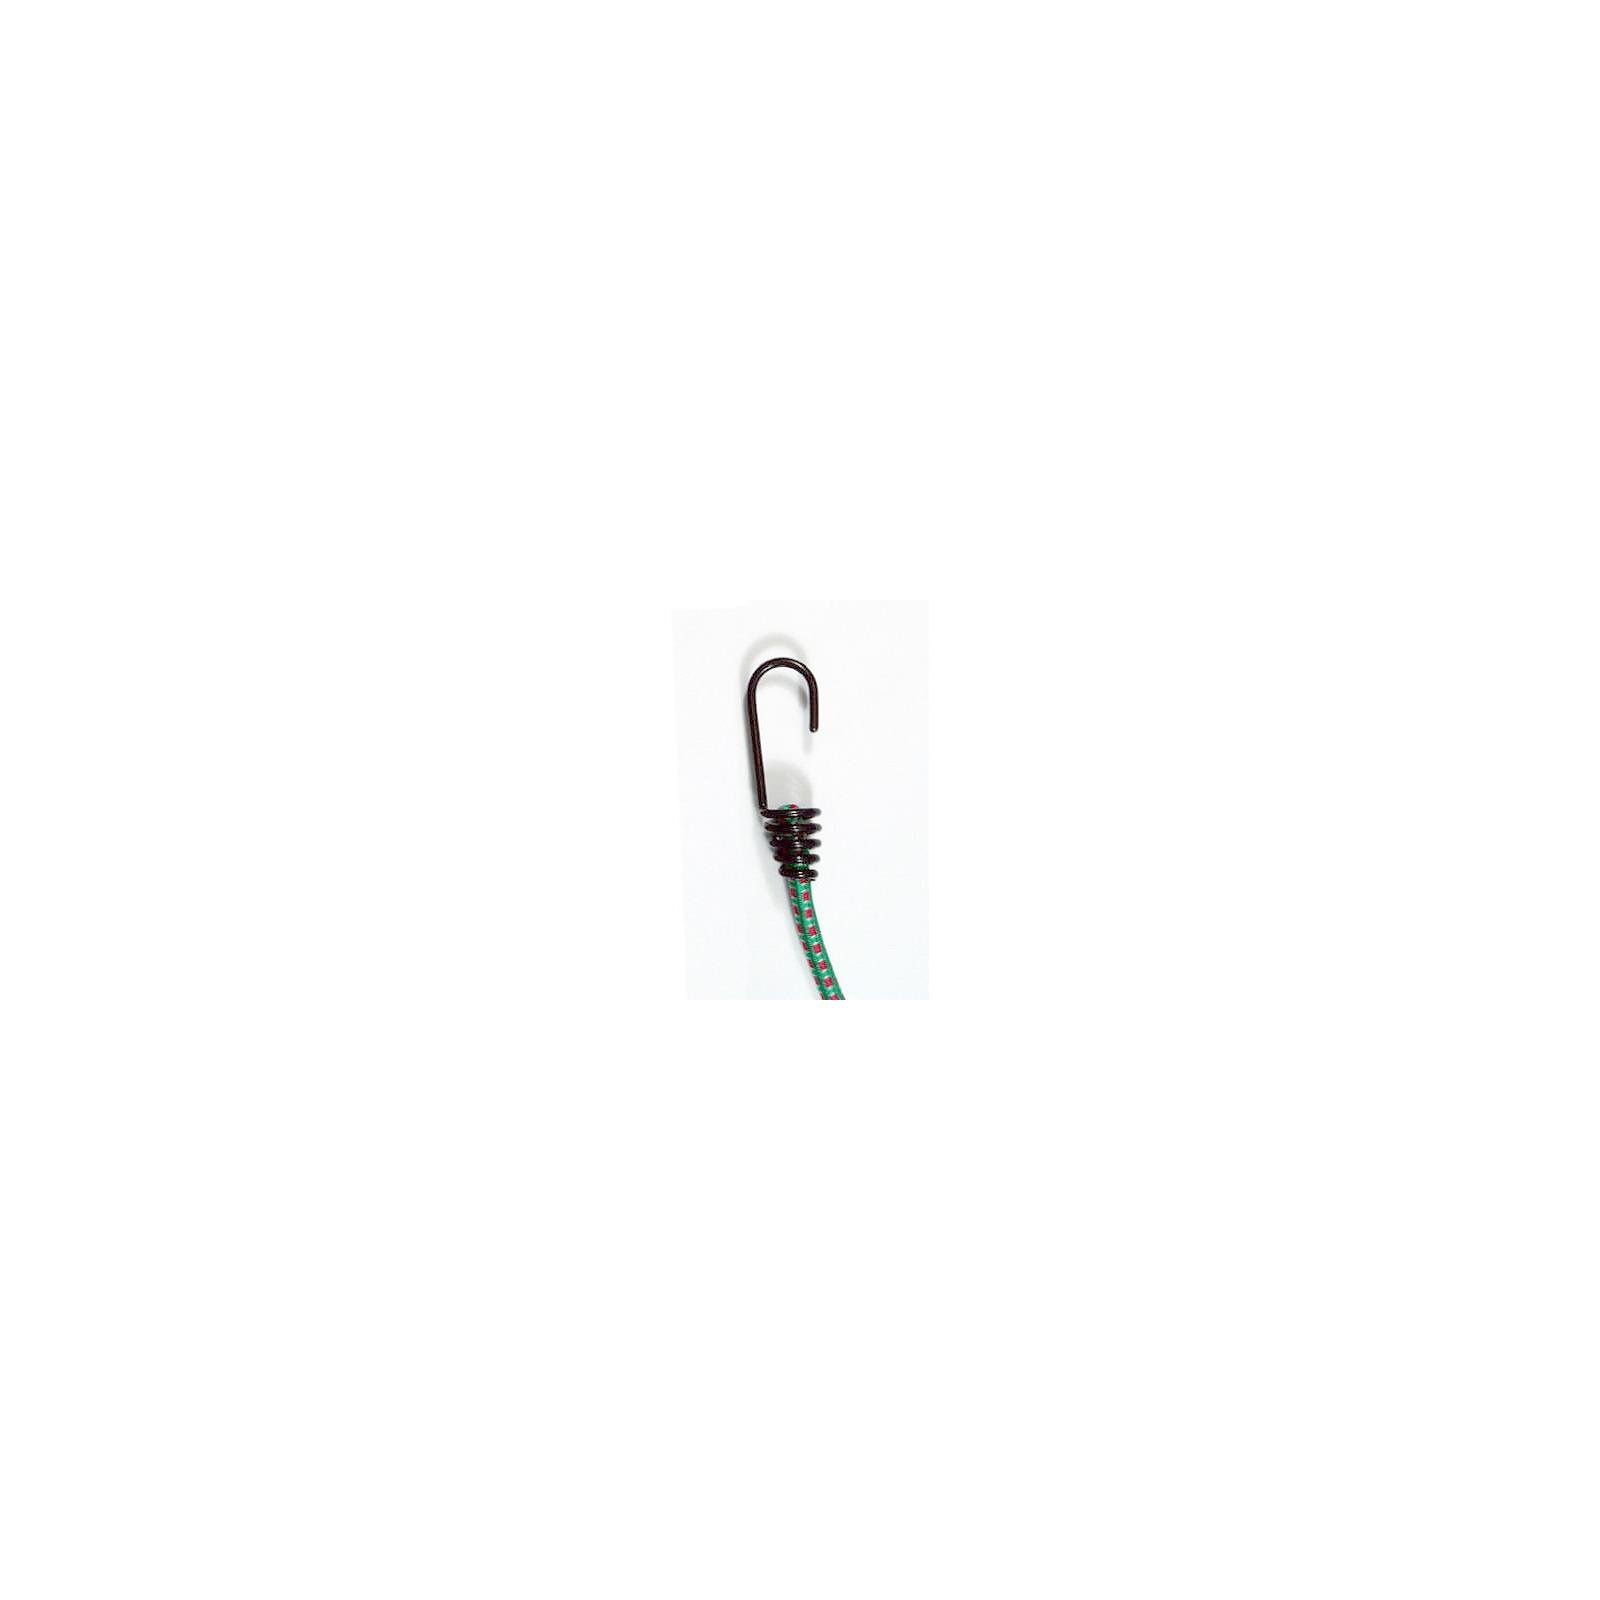 Max MM29 13-Inch Bungee Cord - Quantity 100 by max co ltd (Image #1)